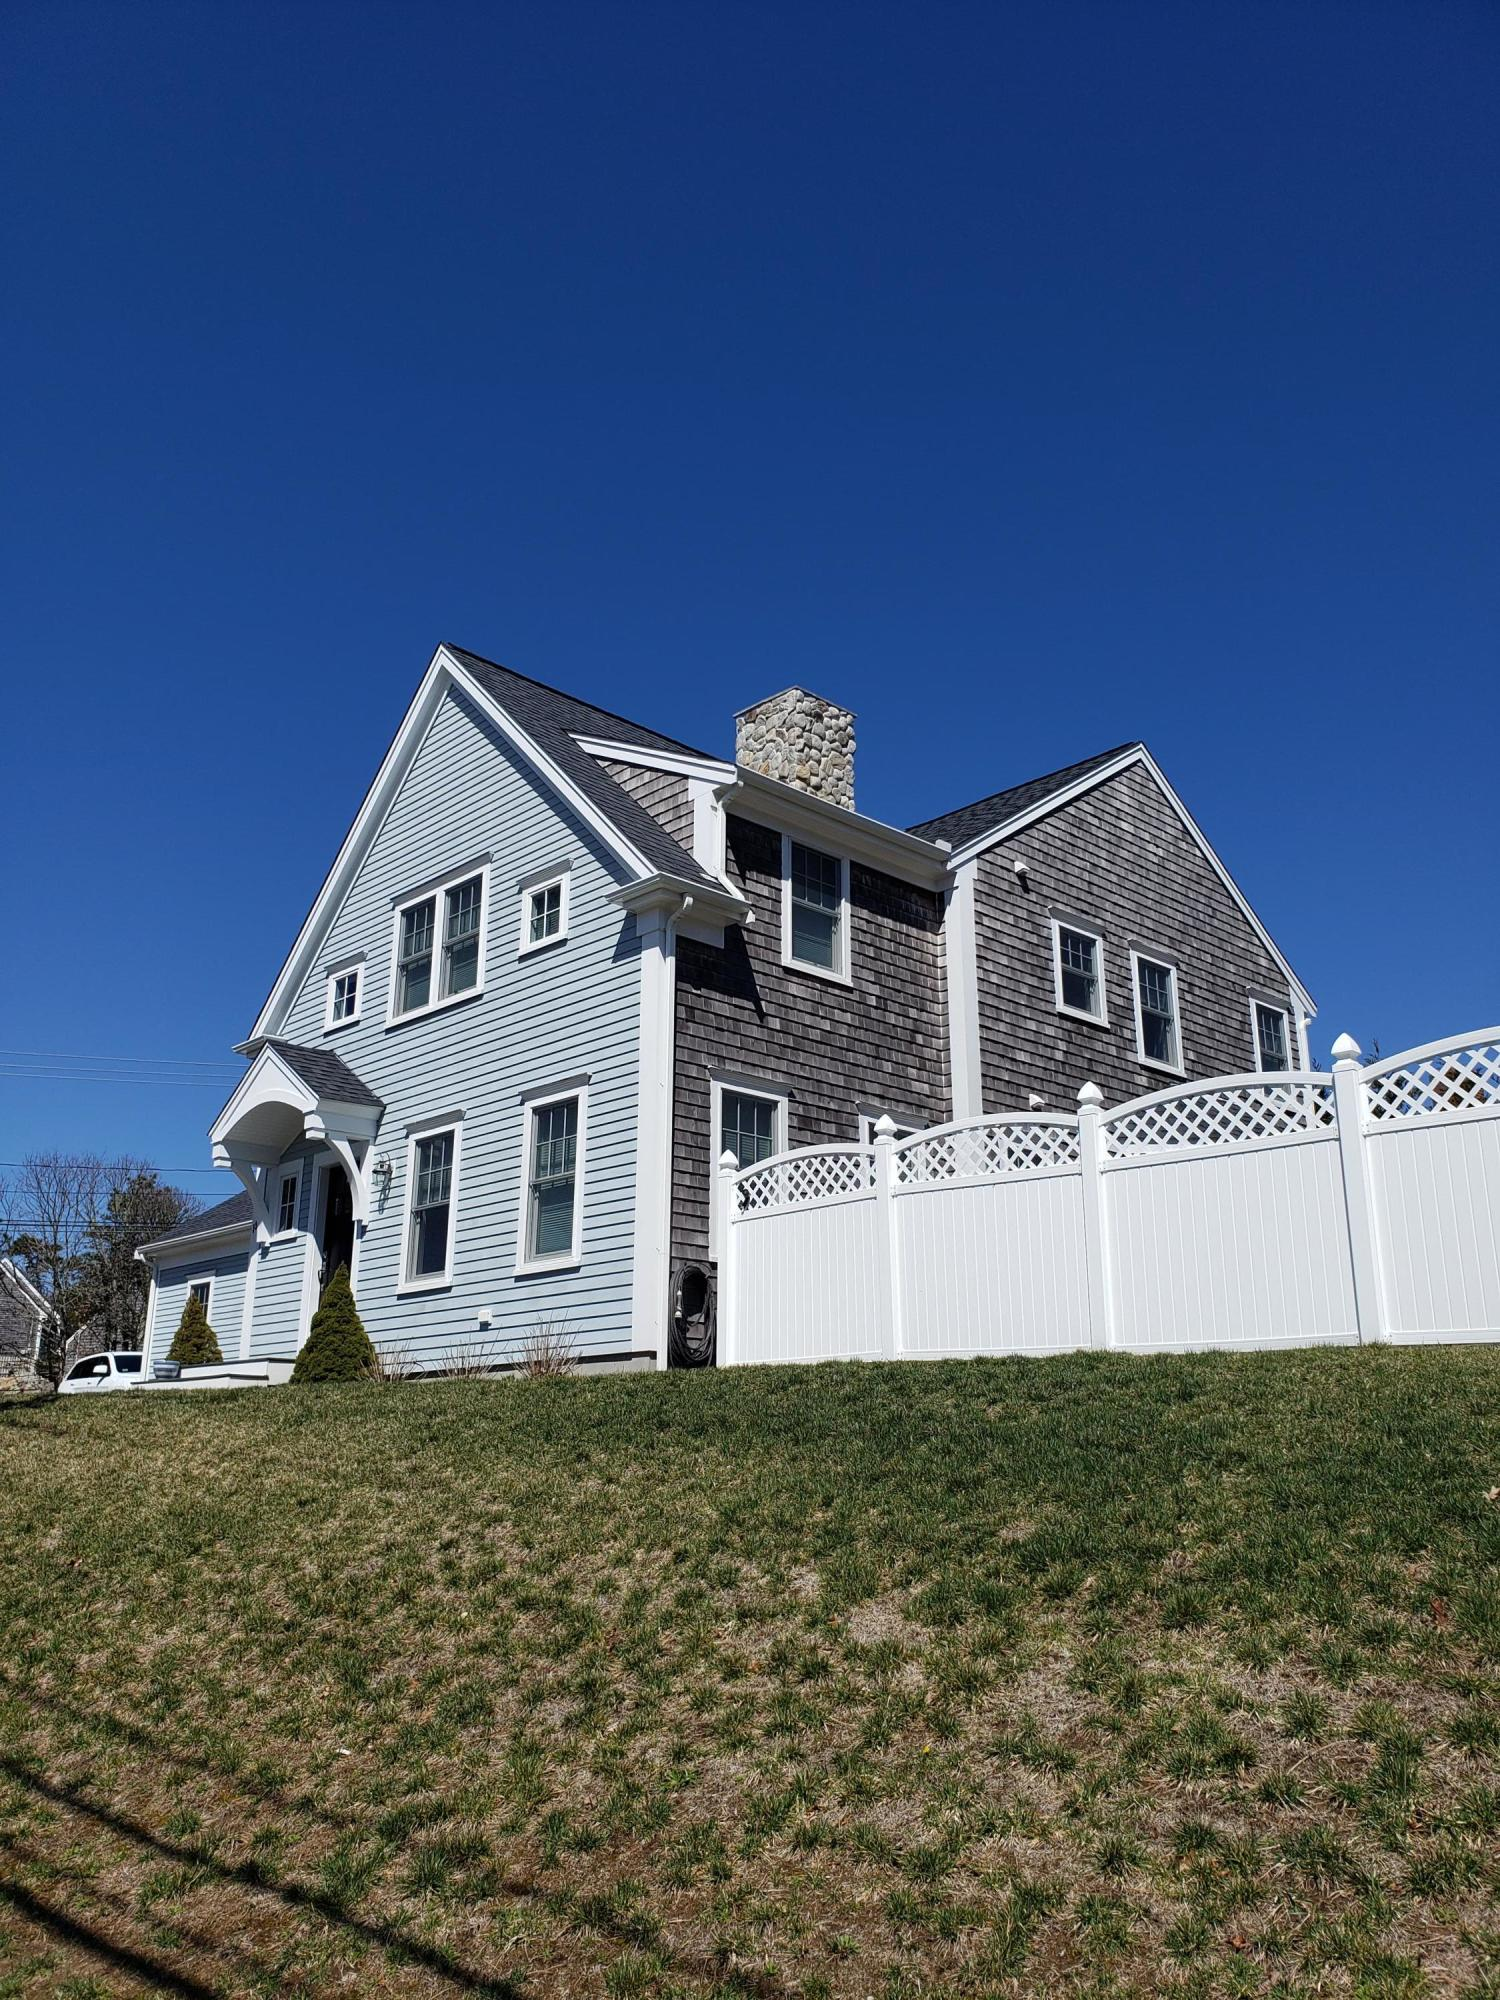 click to view more details 158 Old Queen Anne Road, Chatham, MA 02633